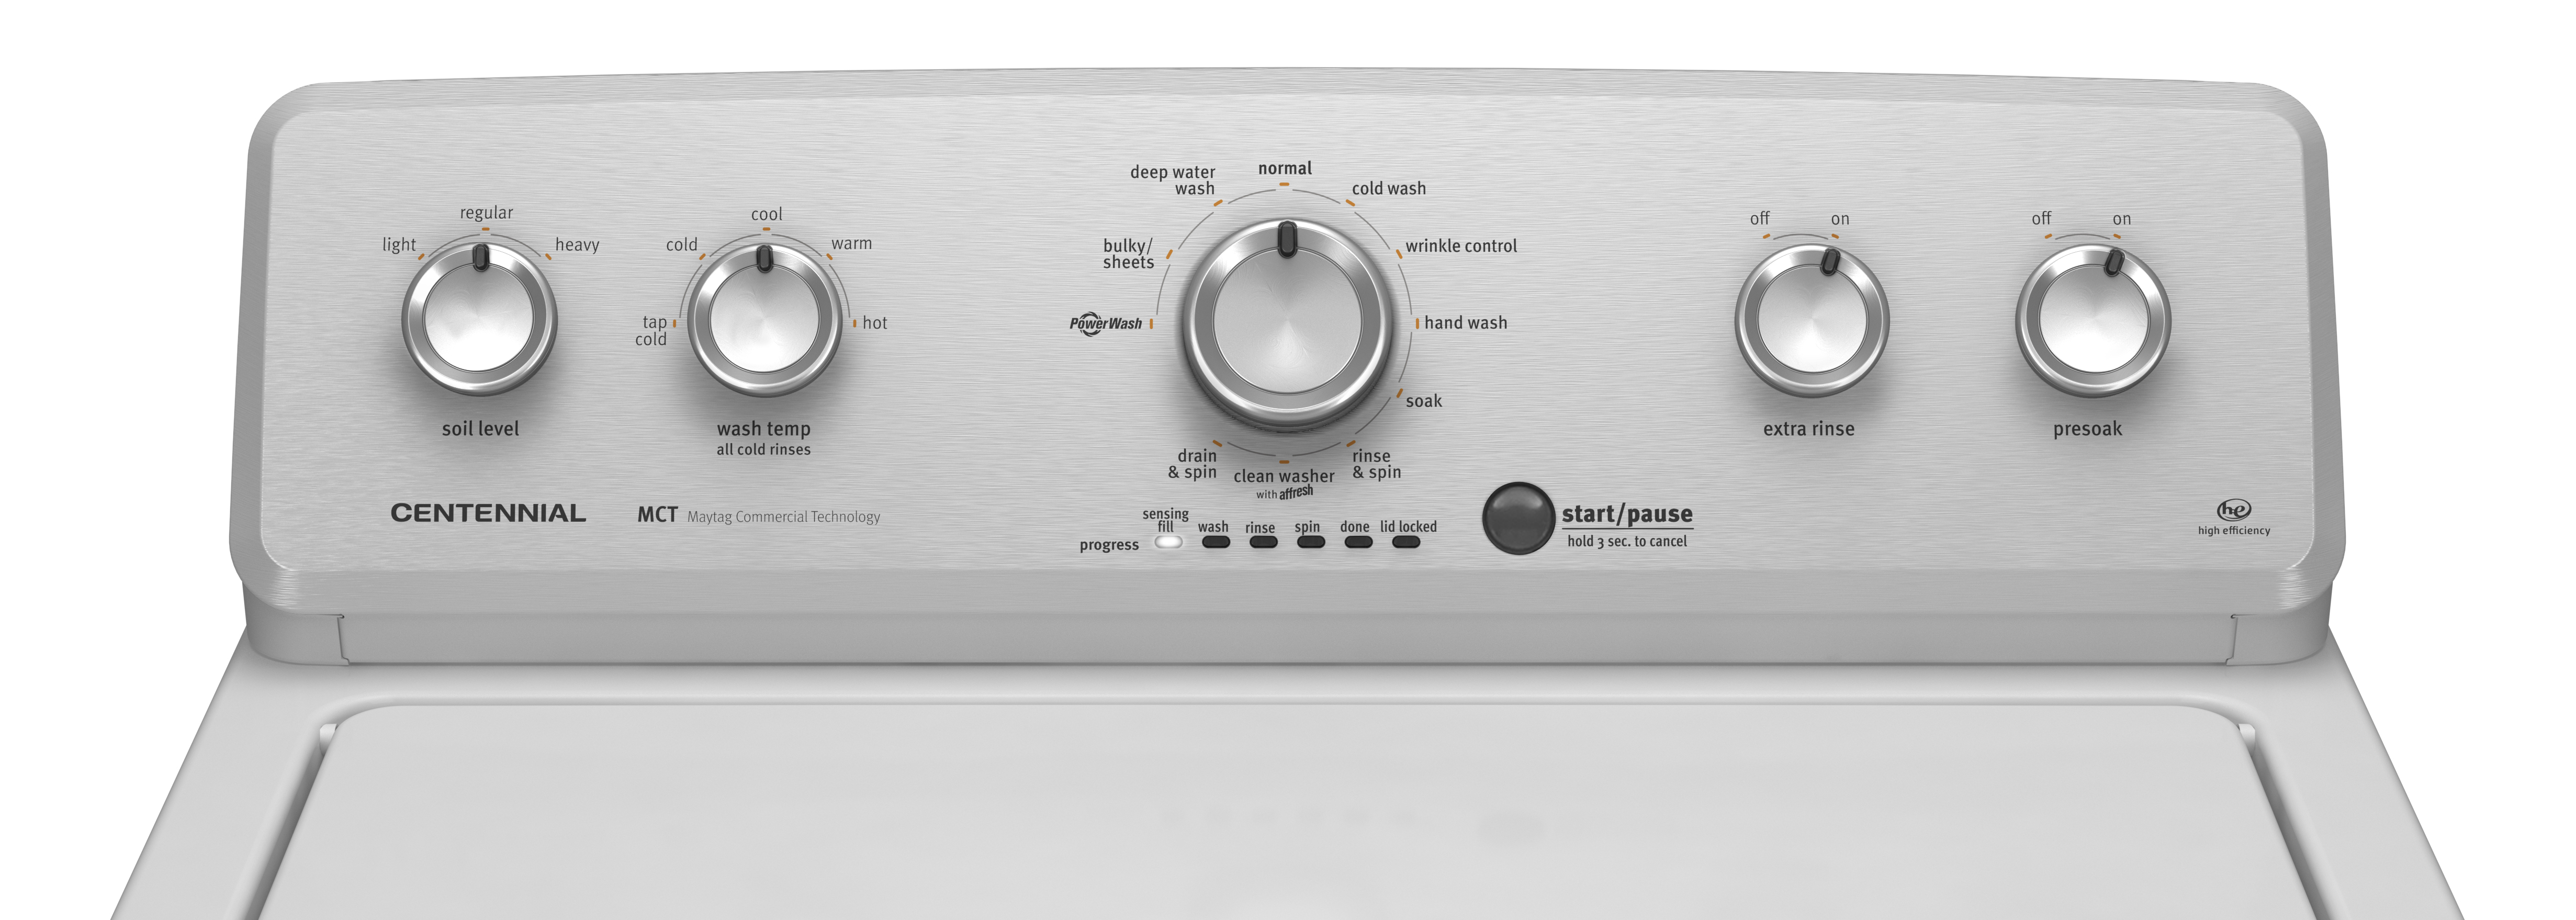 Maytag MVWC415EW 3.6 cu. ft. Top Load Washer-White